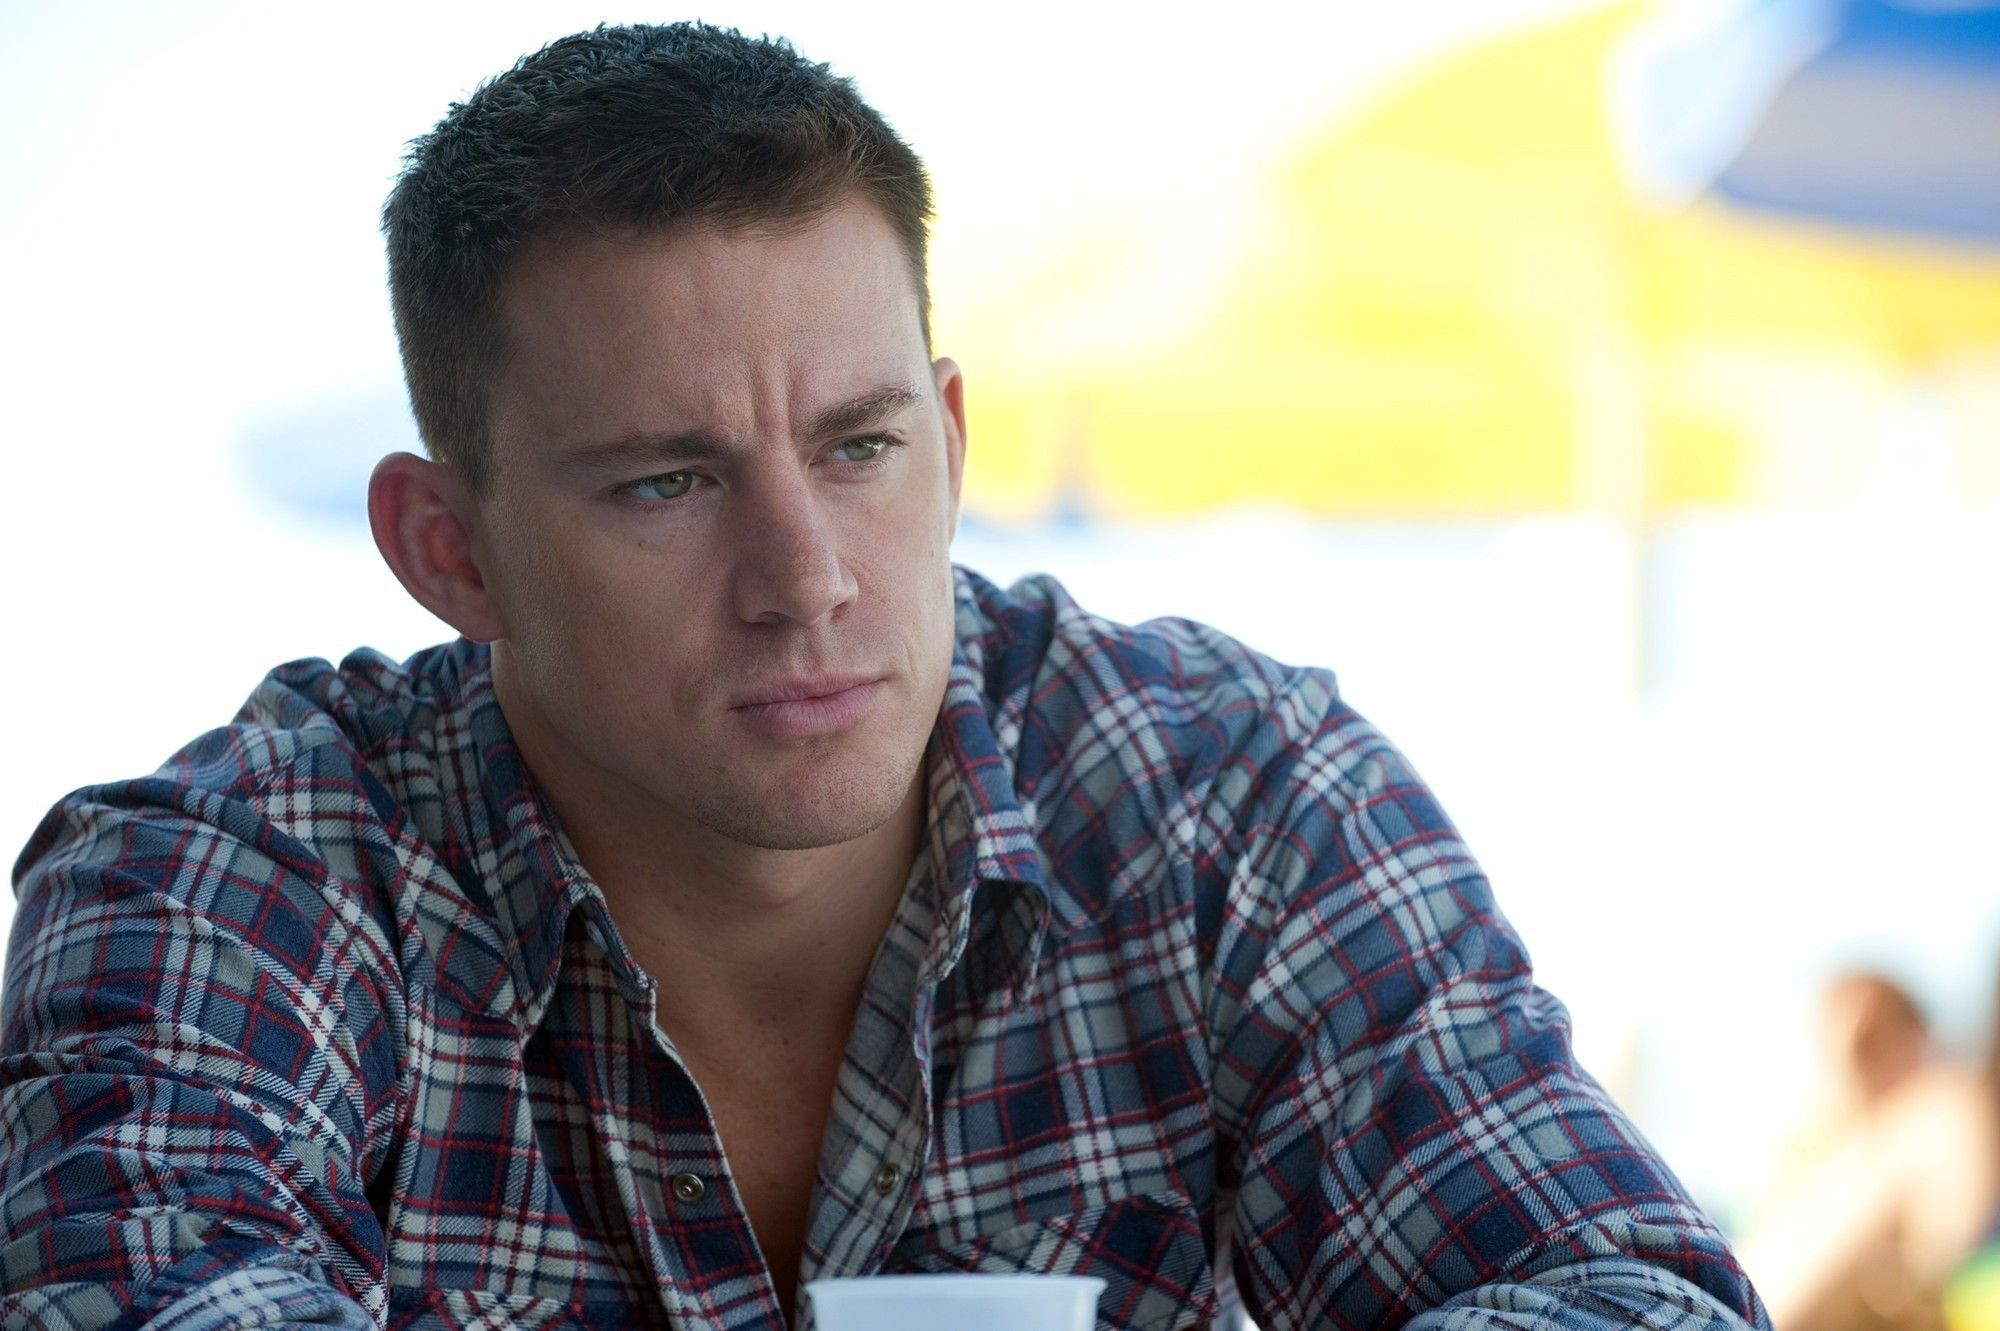 Channing Tatum says 'Gambit' will be an Anti-Hero's Origin